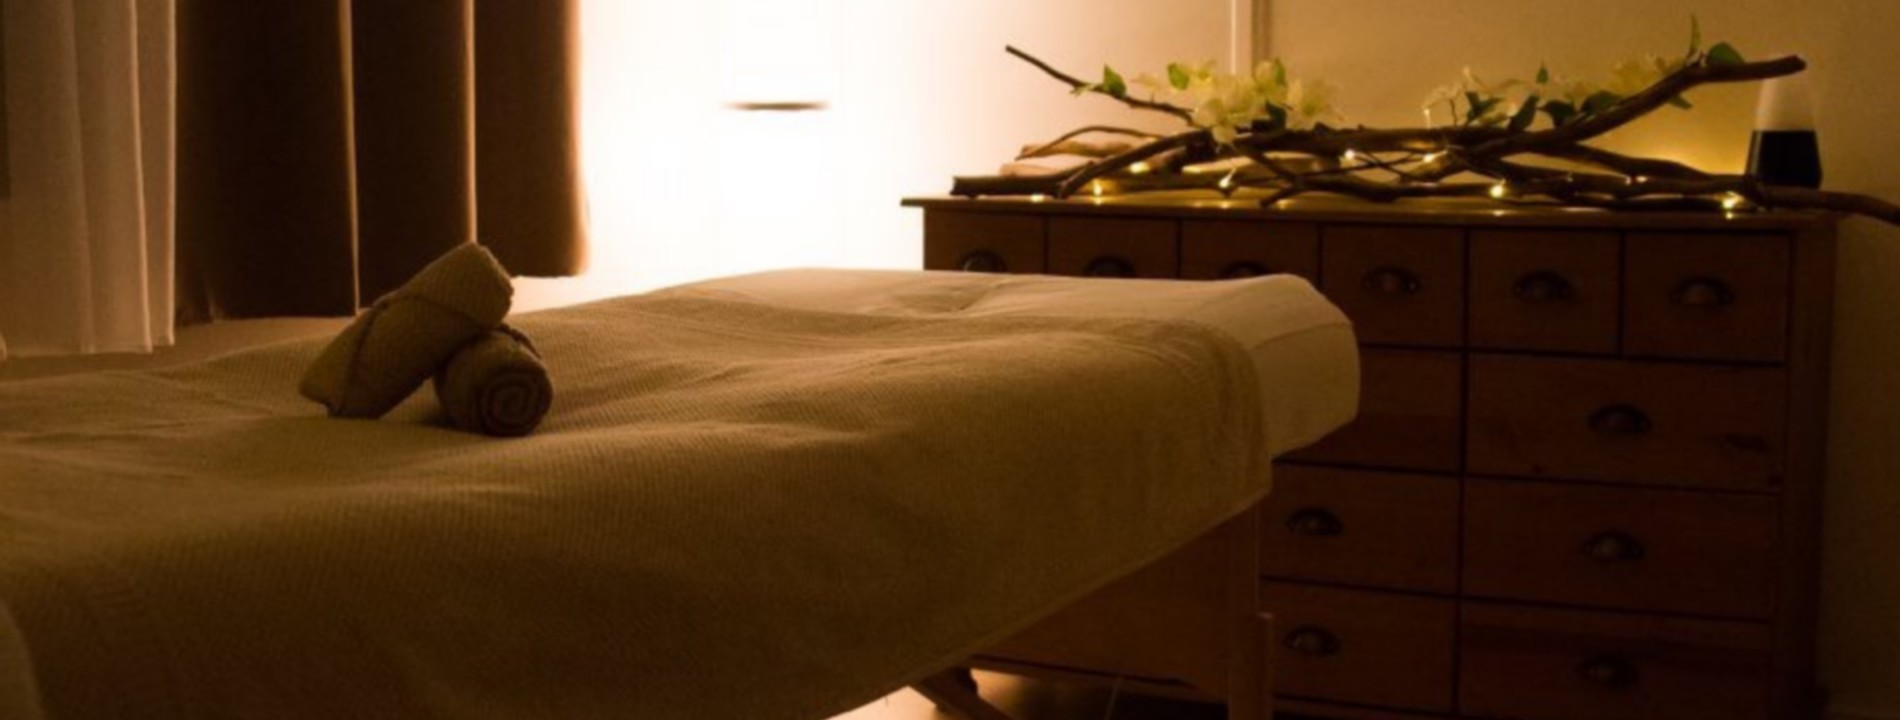 Massage de relaxation à Reims